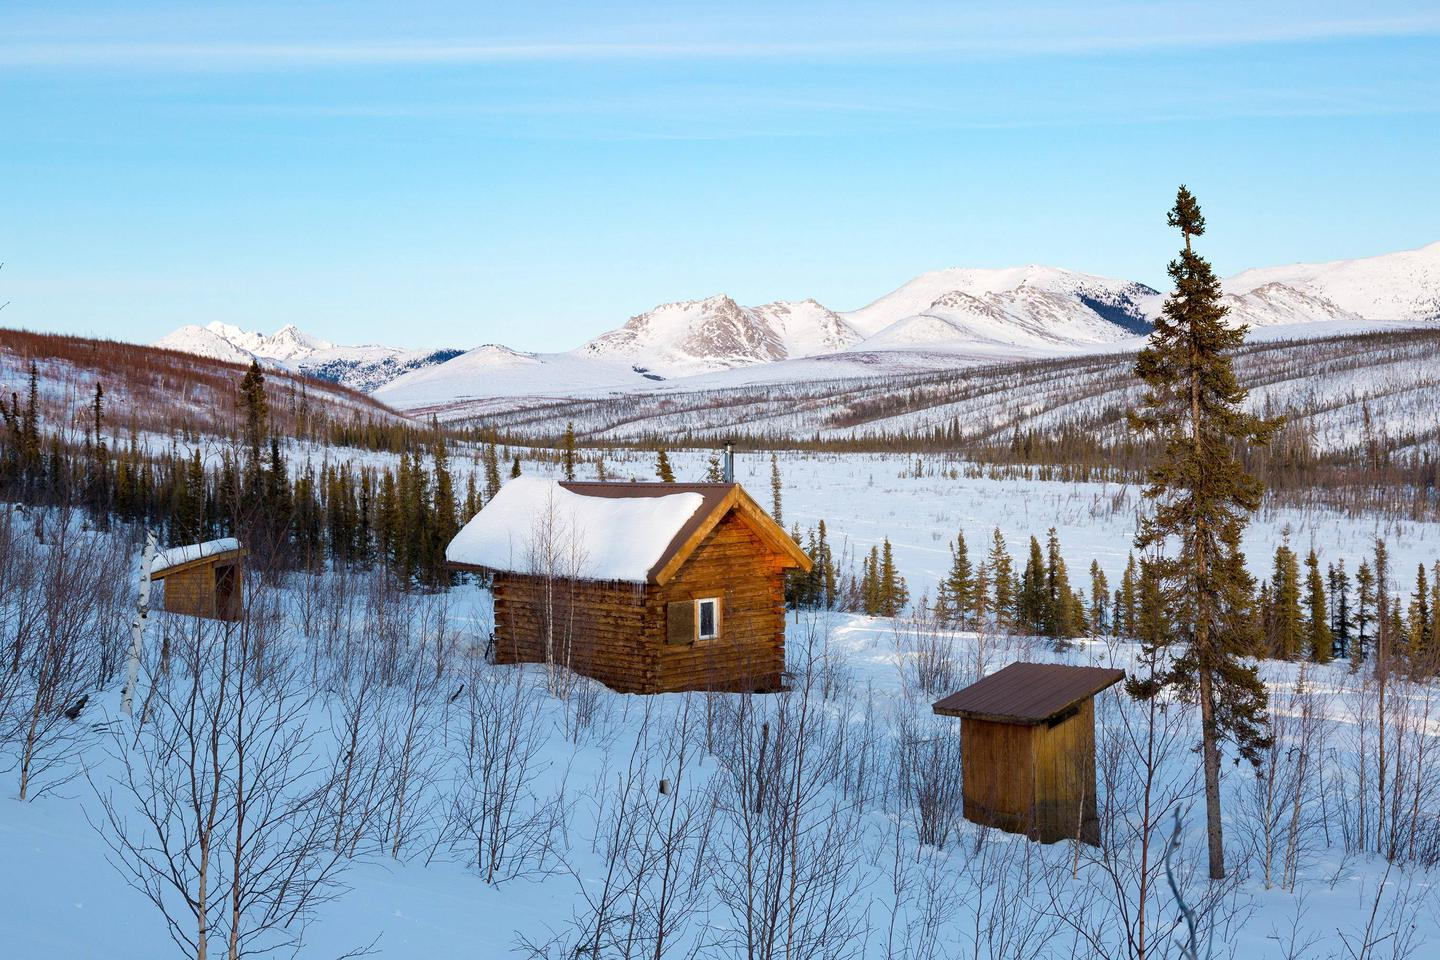 A cabin, shed, and outhouse face a broad, snow-covered valley and mountains.Wolf Run Cabin sits on a low ridge above Windy Creek with views of prominent White Mountains peaks.